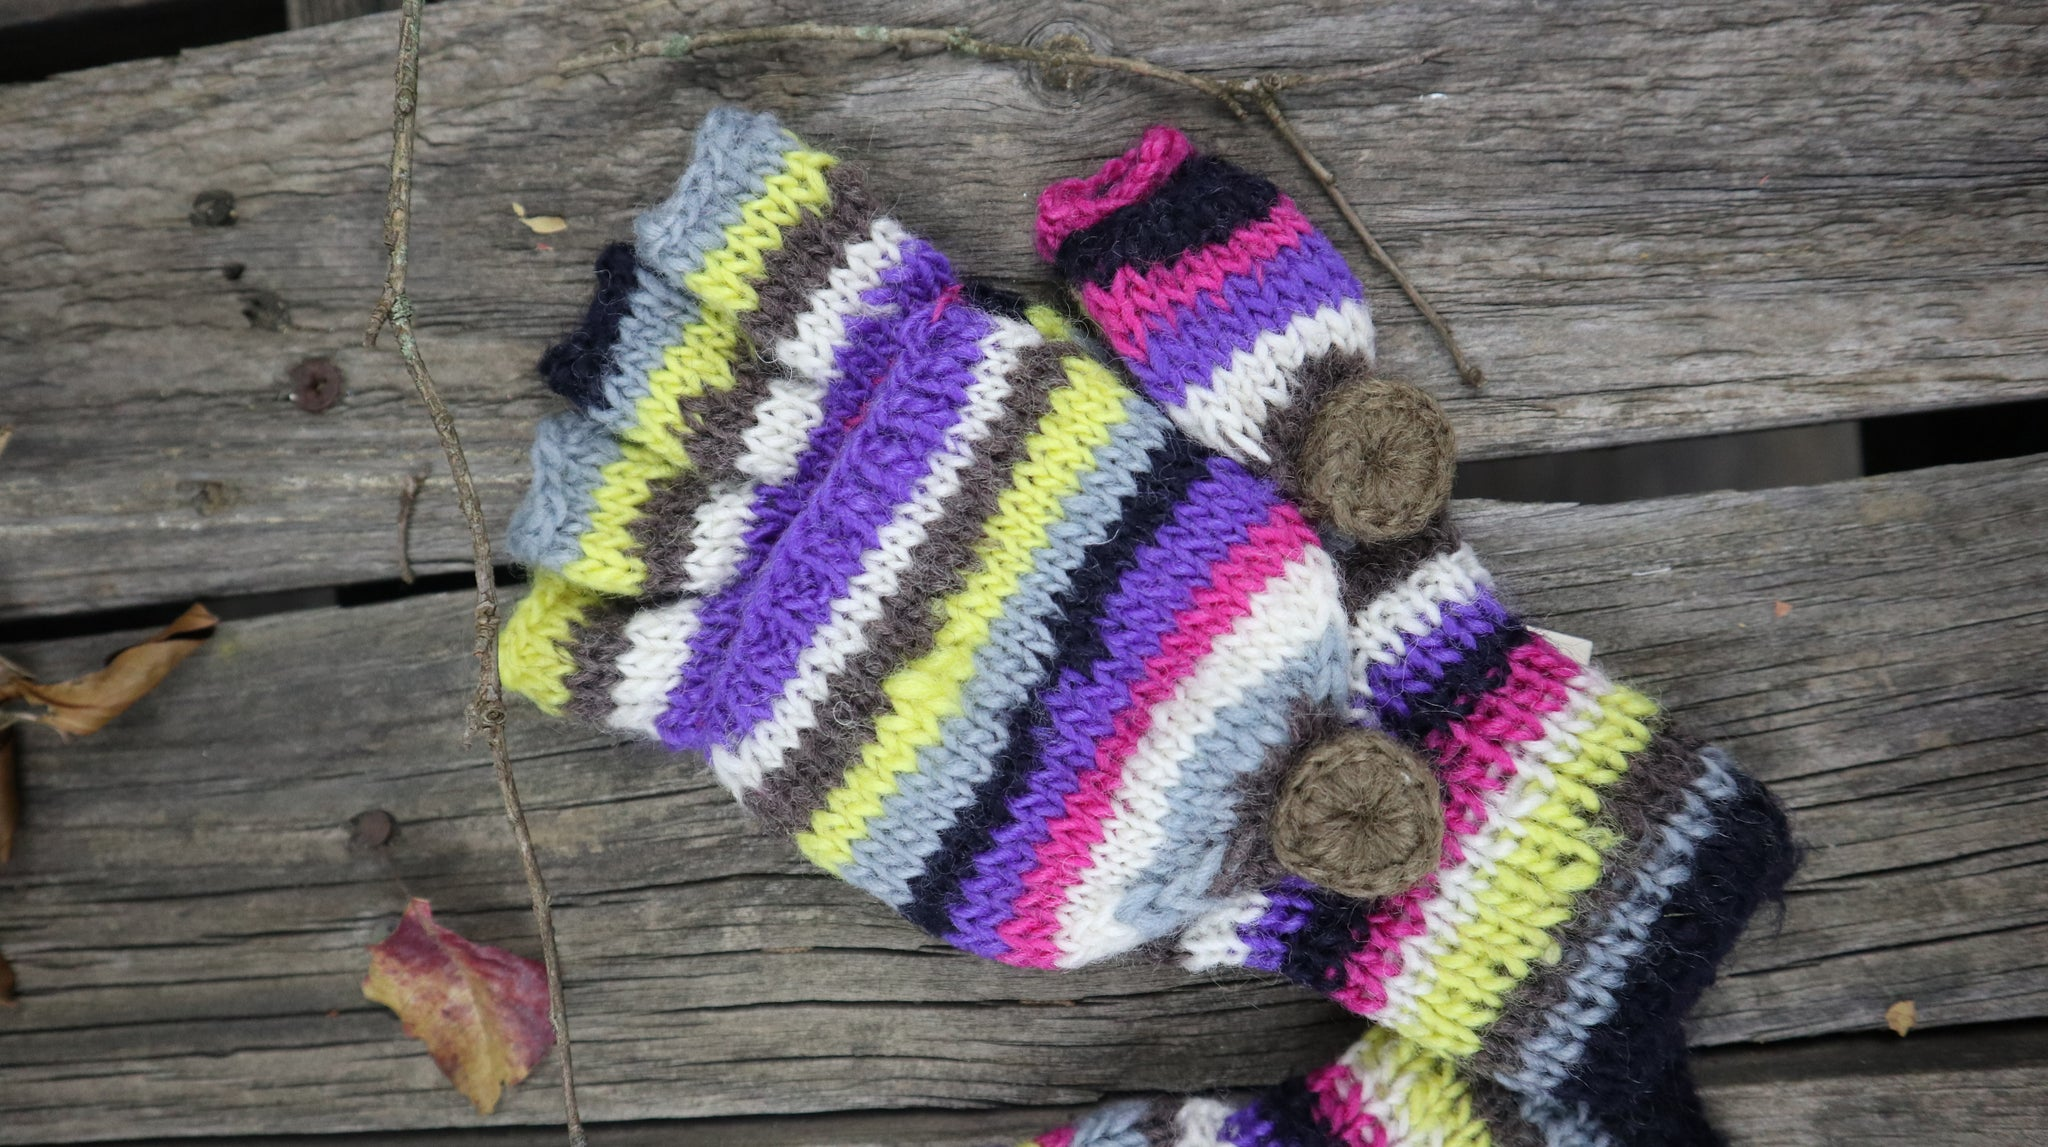 Fair Trade Ethical Children's Striped Fingerless Gloves with Cap in Pink Purple, Yellow and Grey